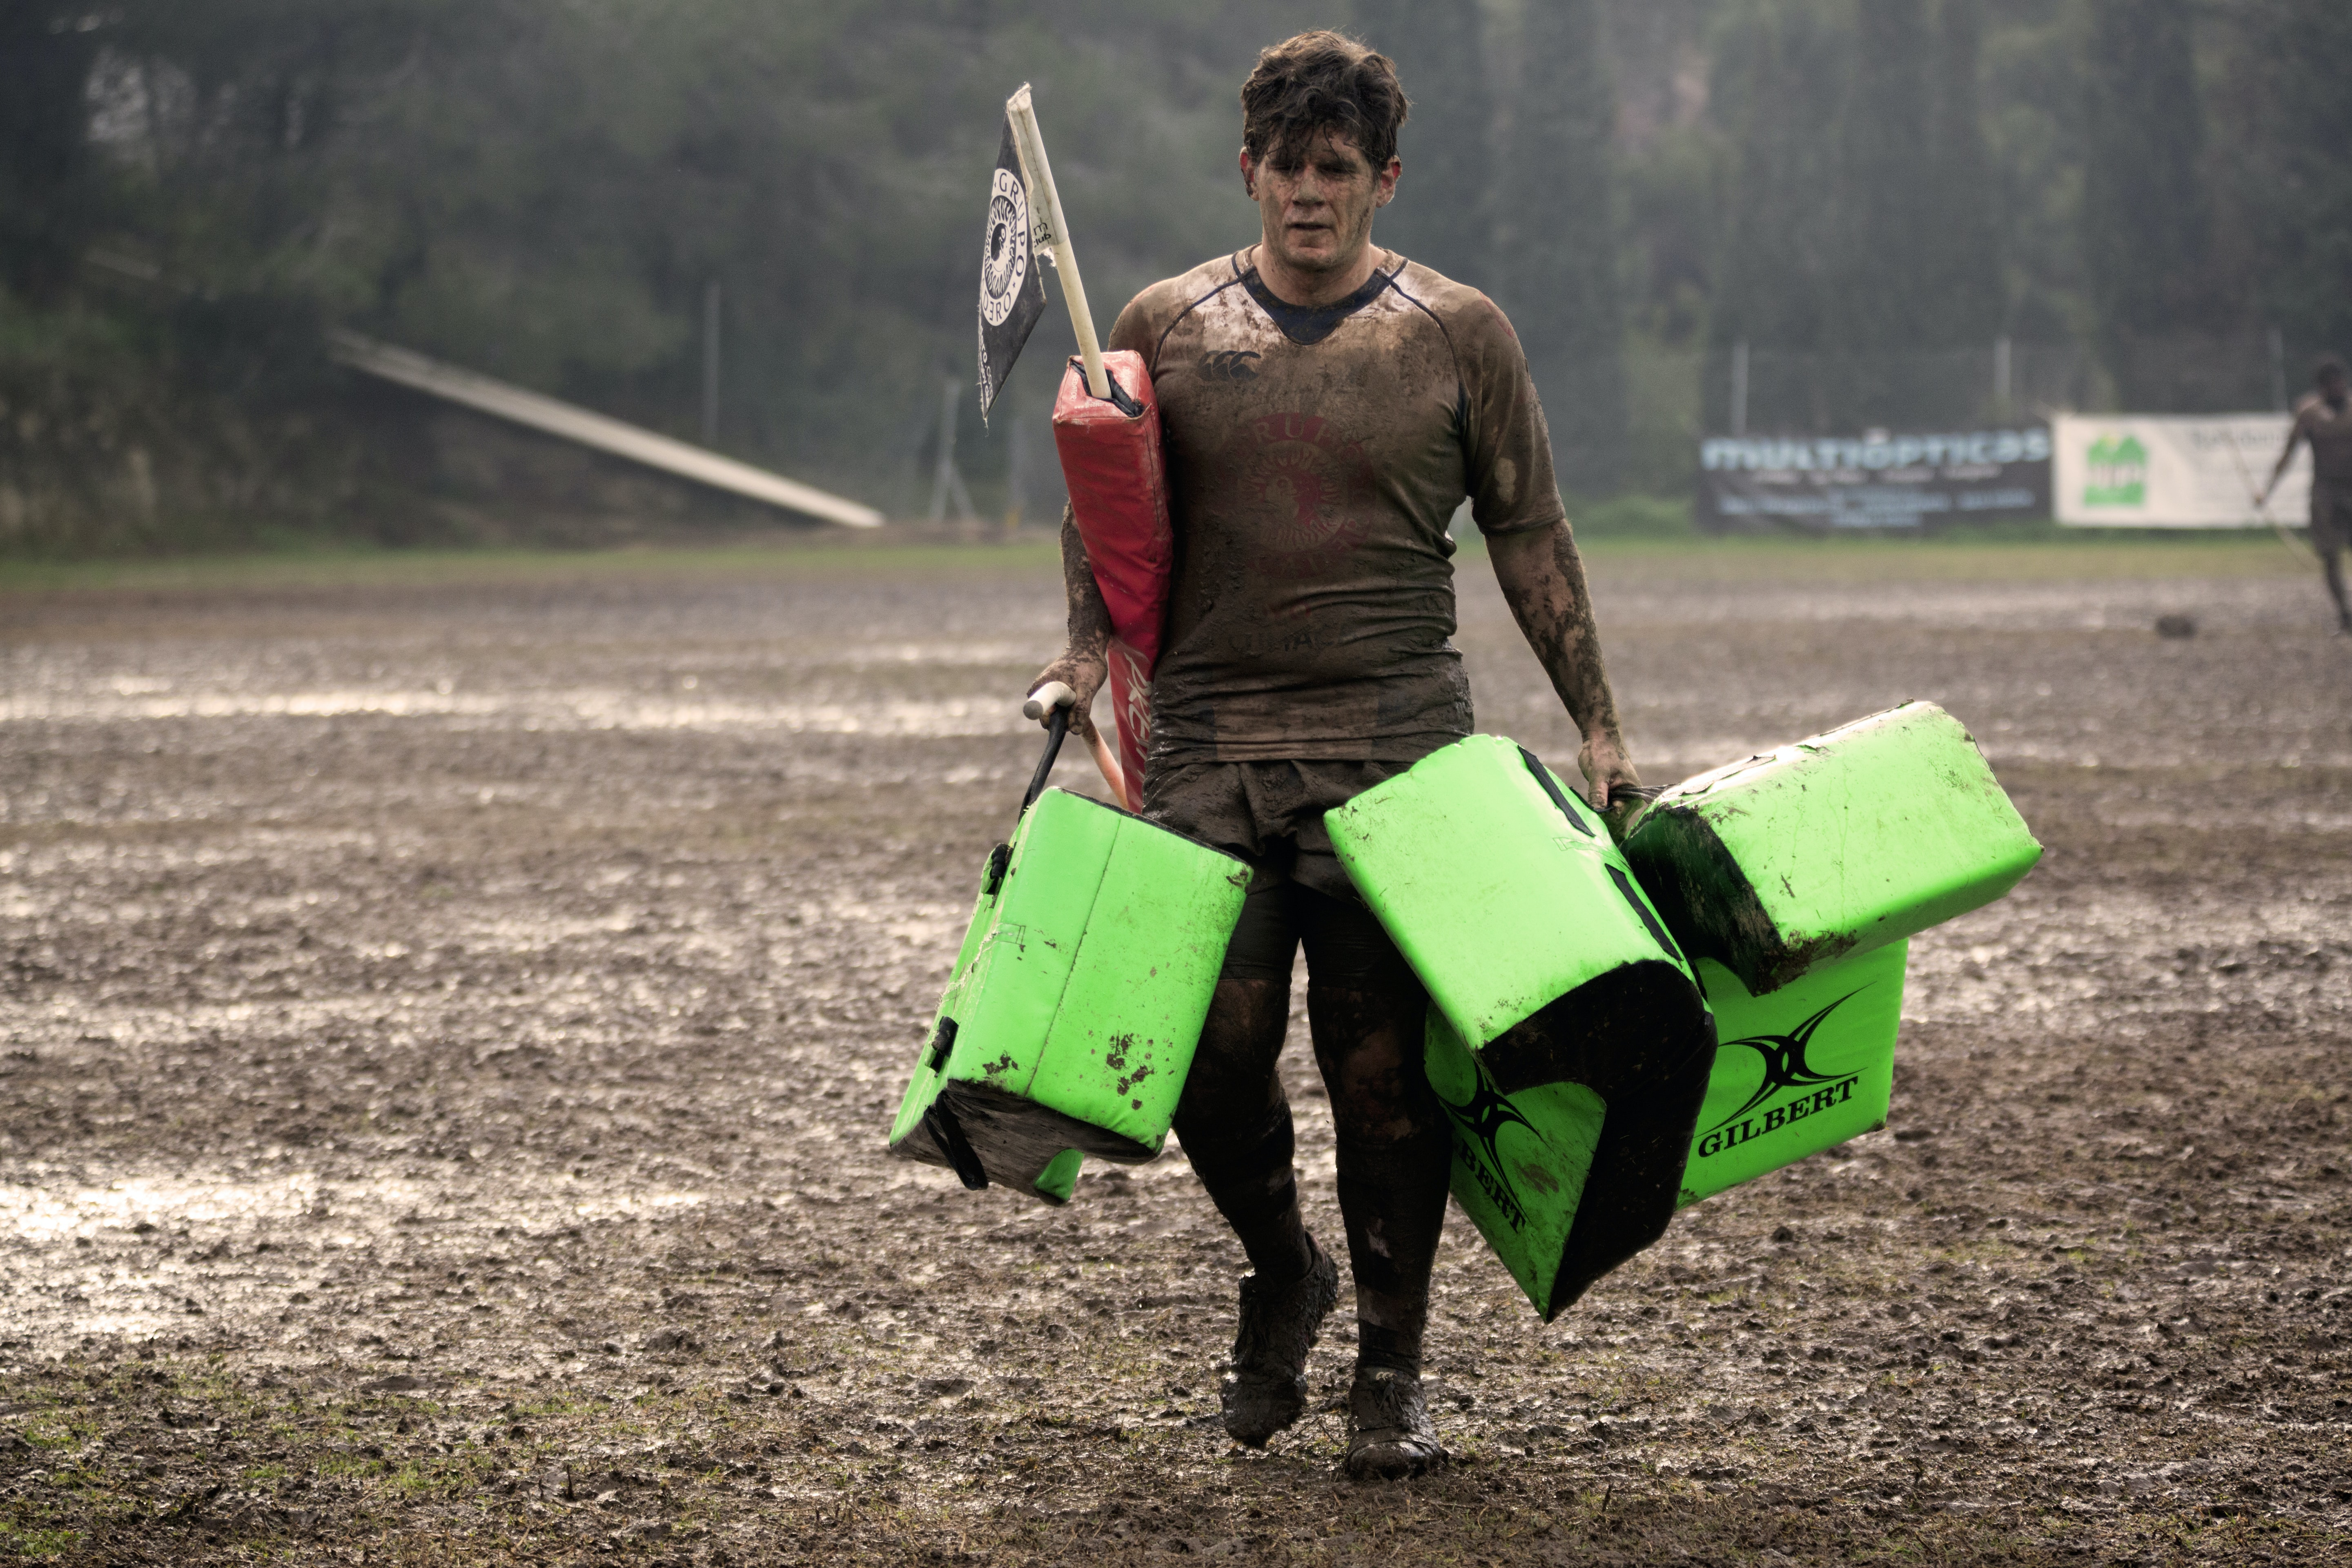 man covered in mud carrying leather training pads